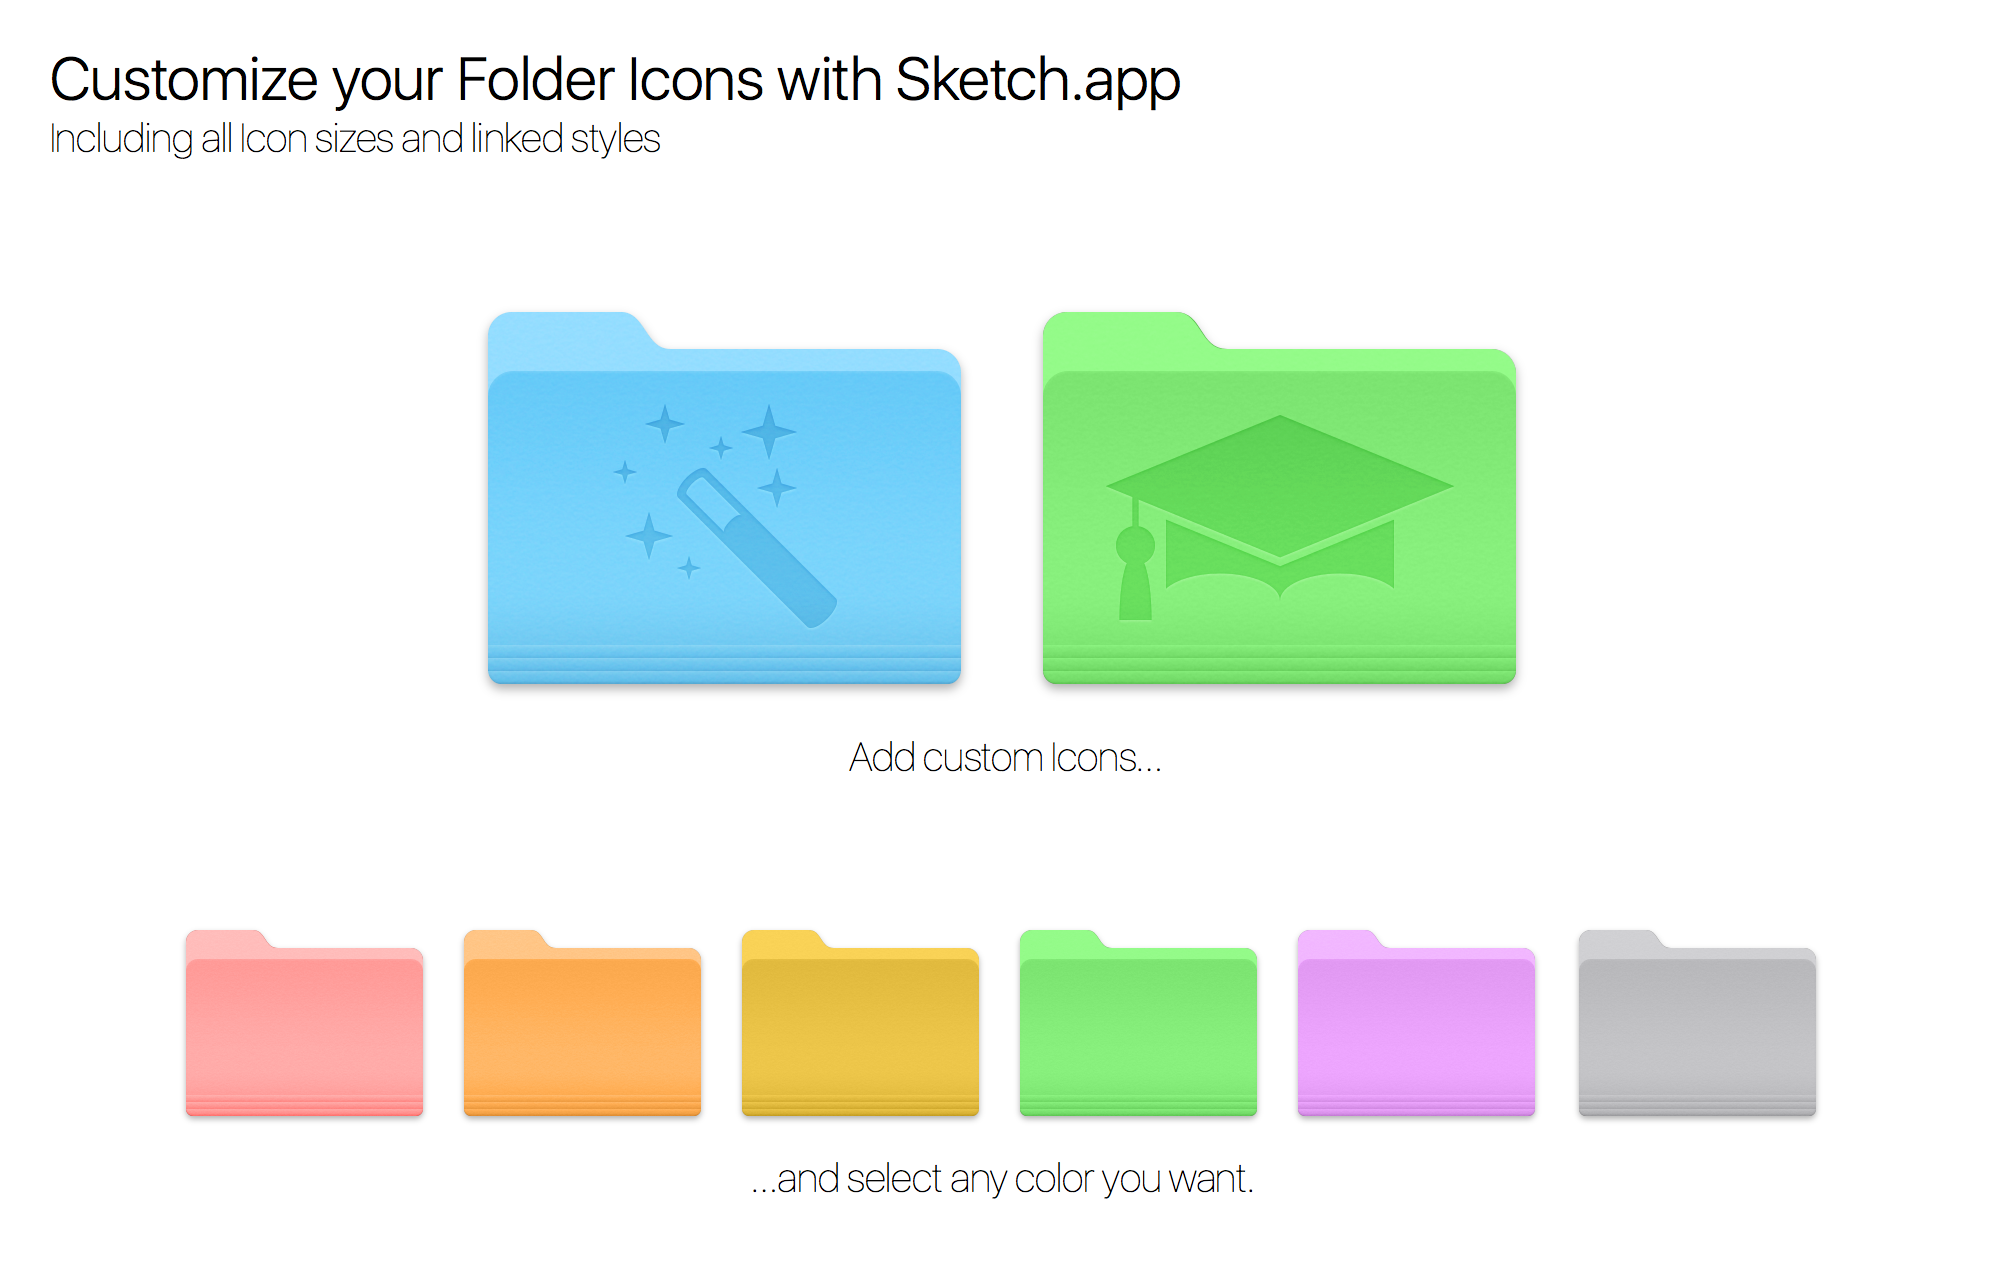 Customize Your Mac Folder Icons With Sketch App By Alexkaessner On Deviantart